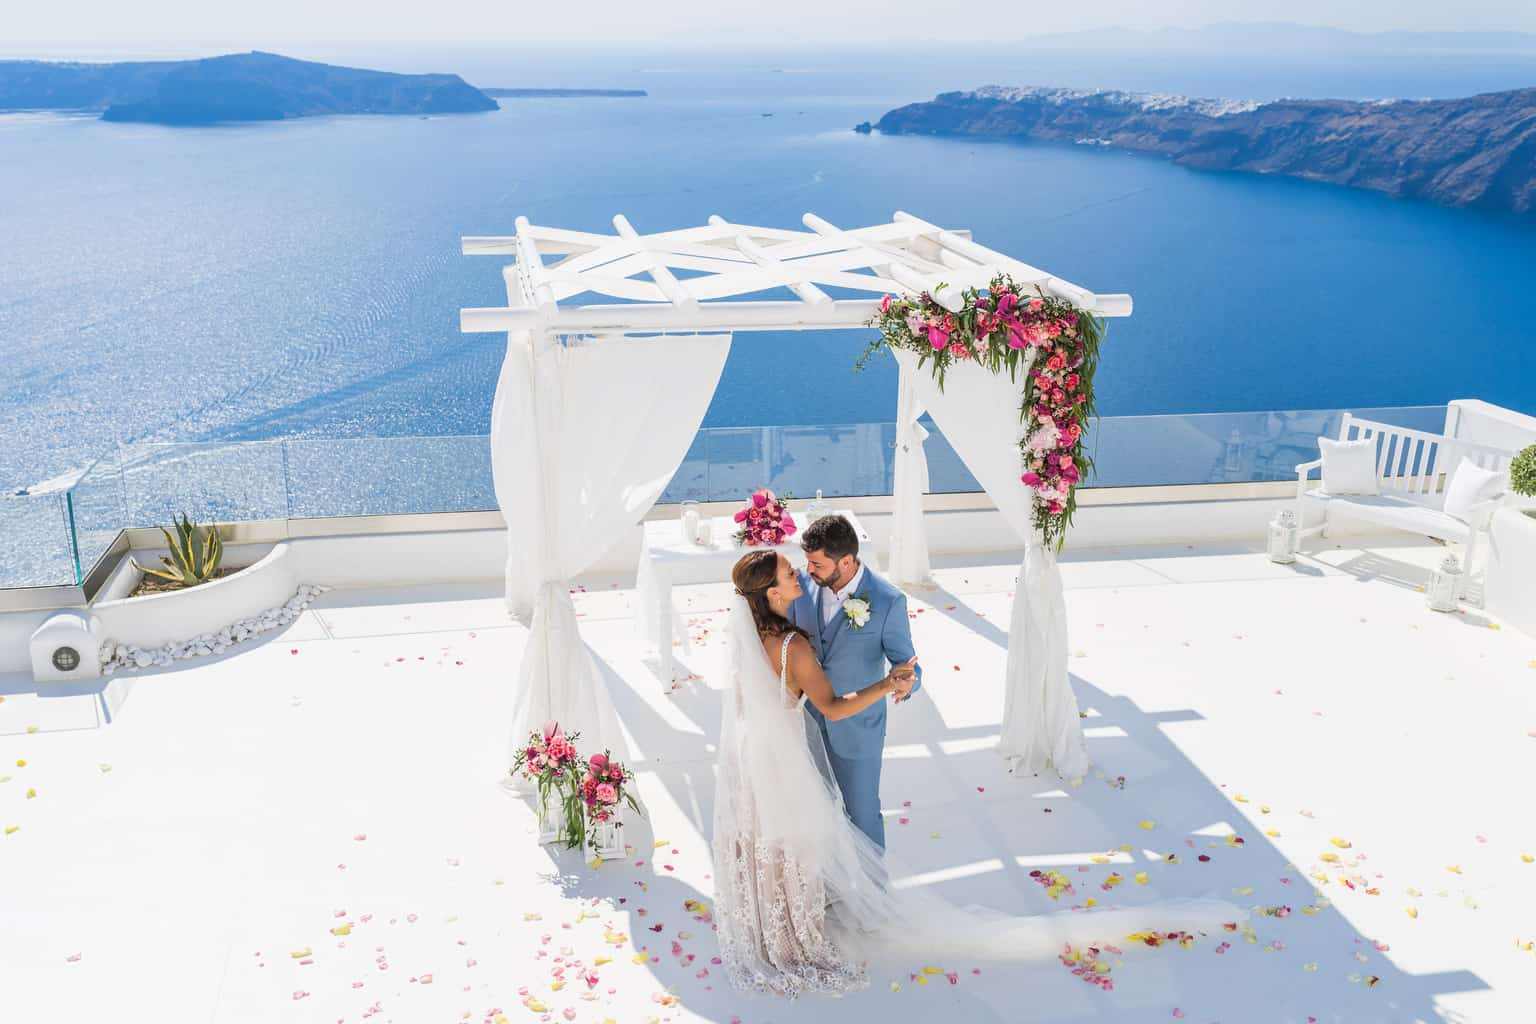 Destination-wedding-grecia-elopment-wedding-fotografia-life-click-studioLFC129of185